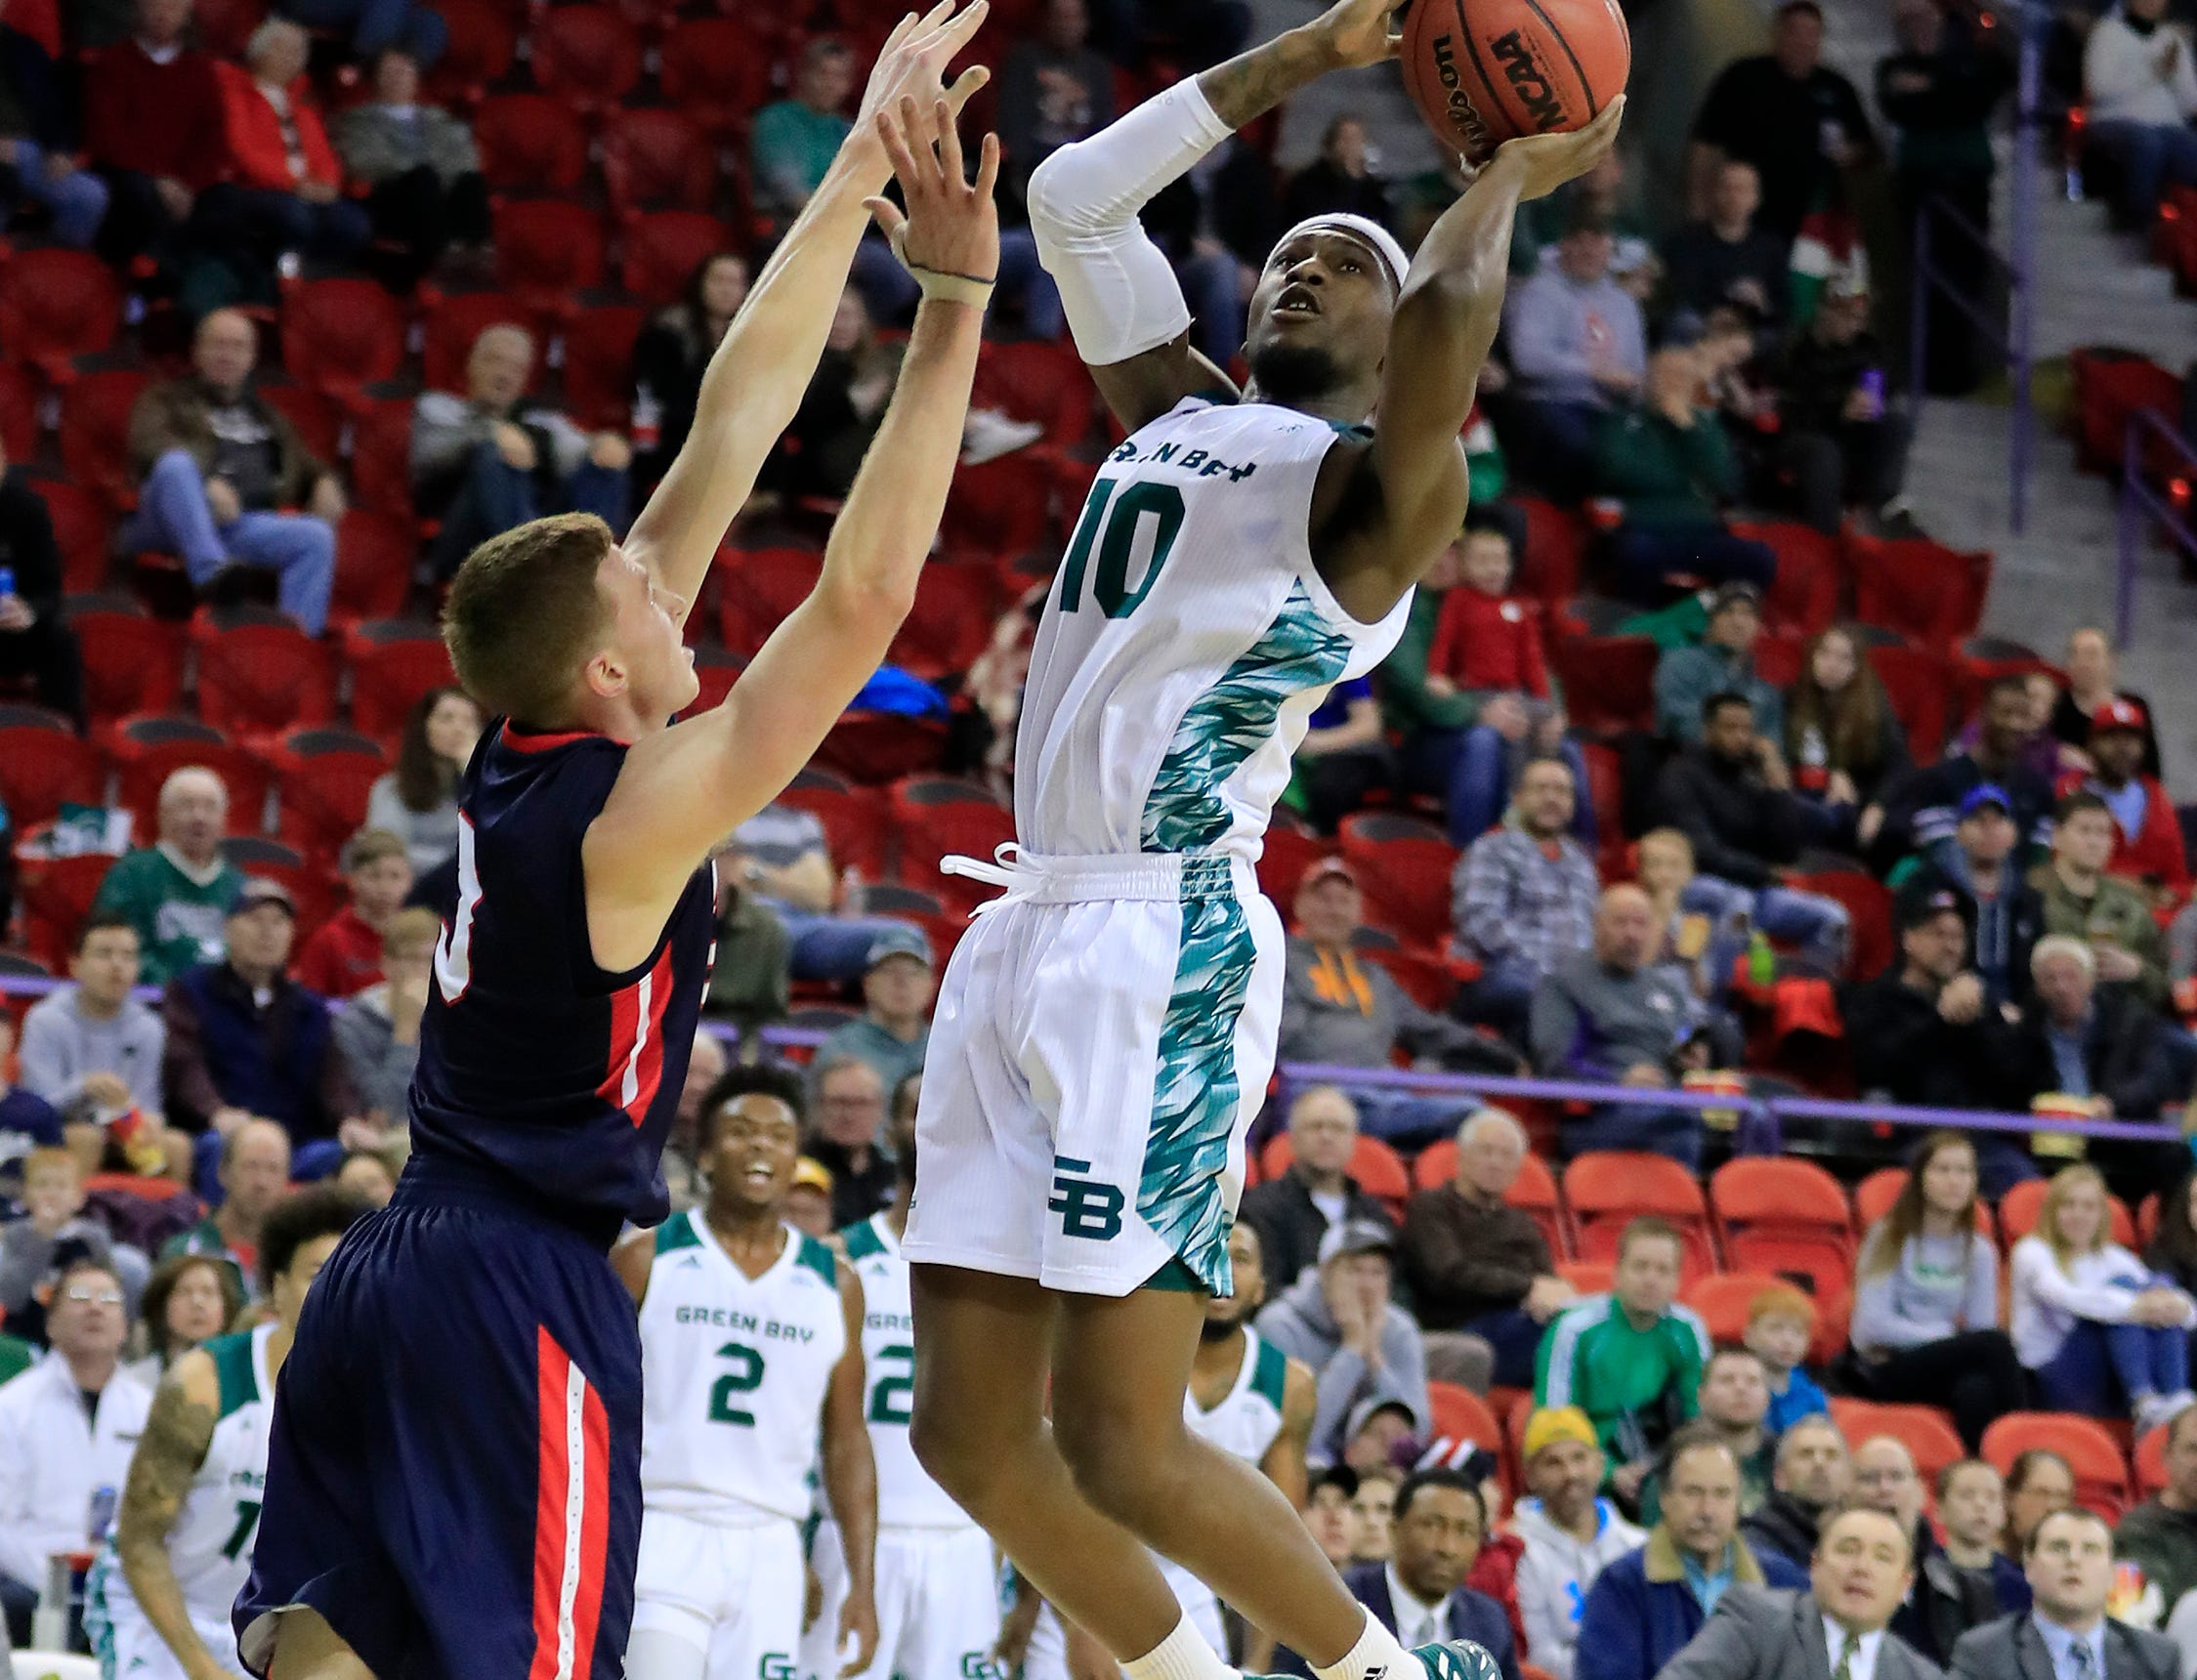 Green Bay Phoenix forward Shanquan Hemphill (10) shoots against the Belmont Bruins in a NCAA basketball game at the Resch Center on Saturday, December 1, 2018 in Ashwaubenon, Wis.